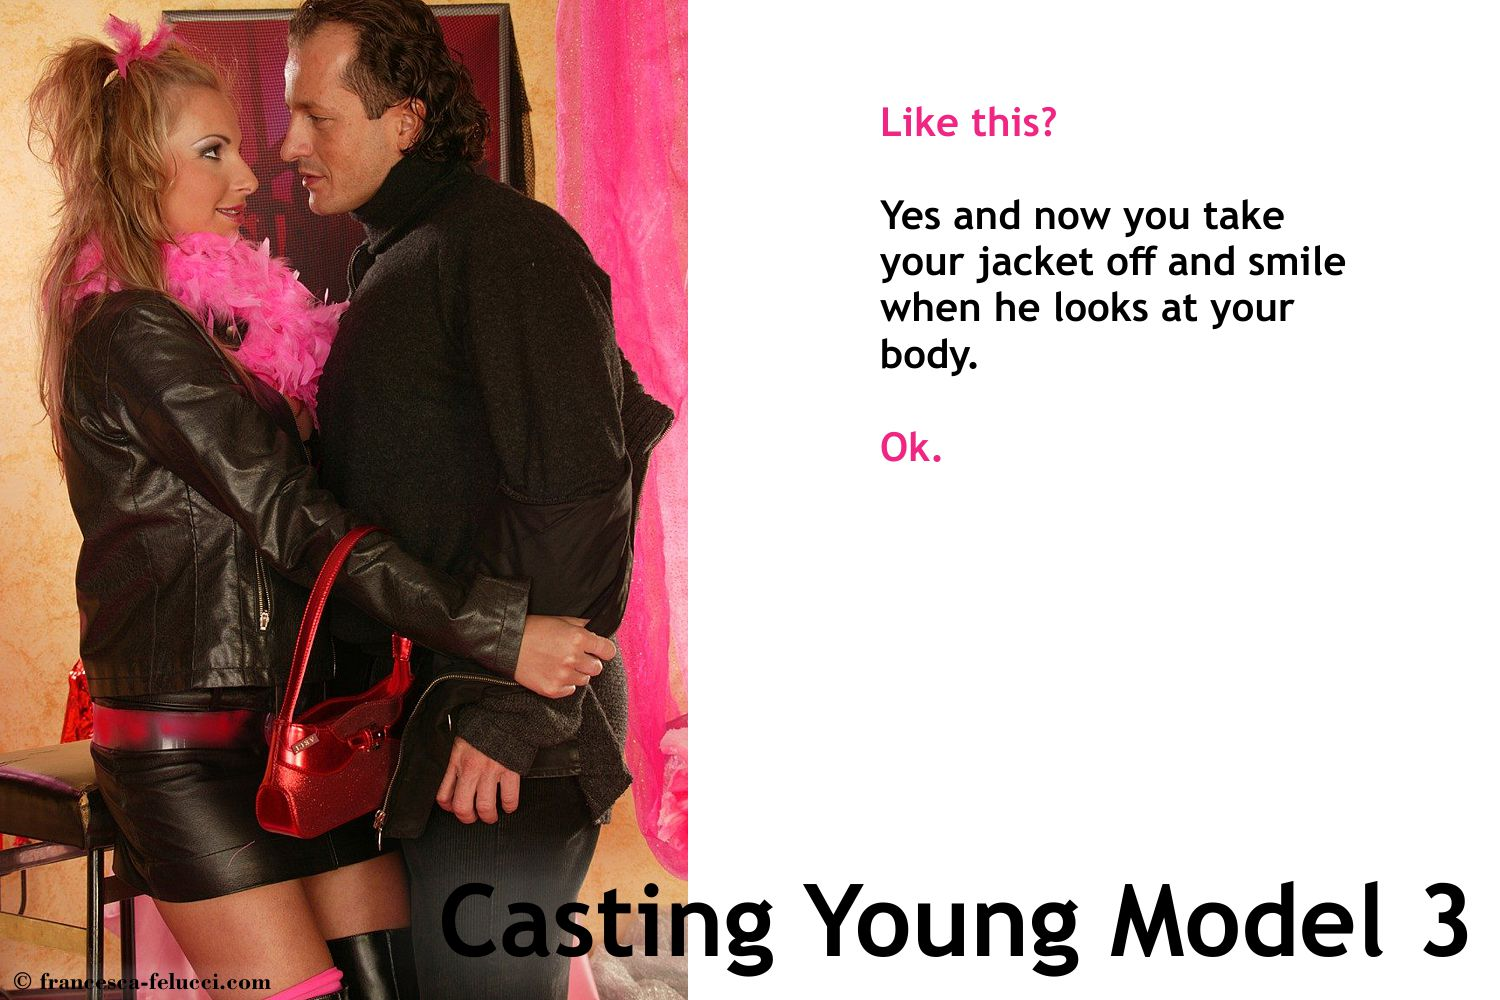 casting_young_model_3_003